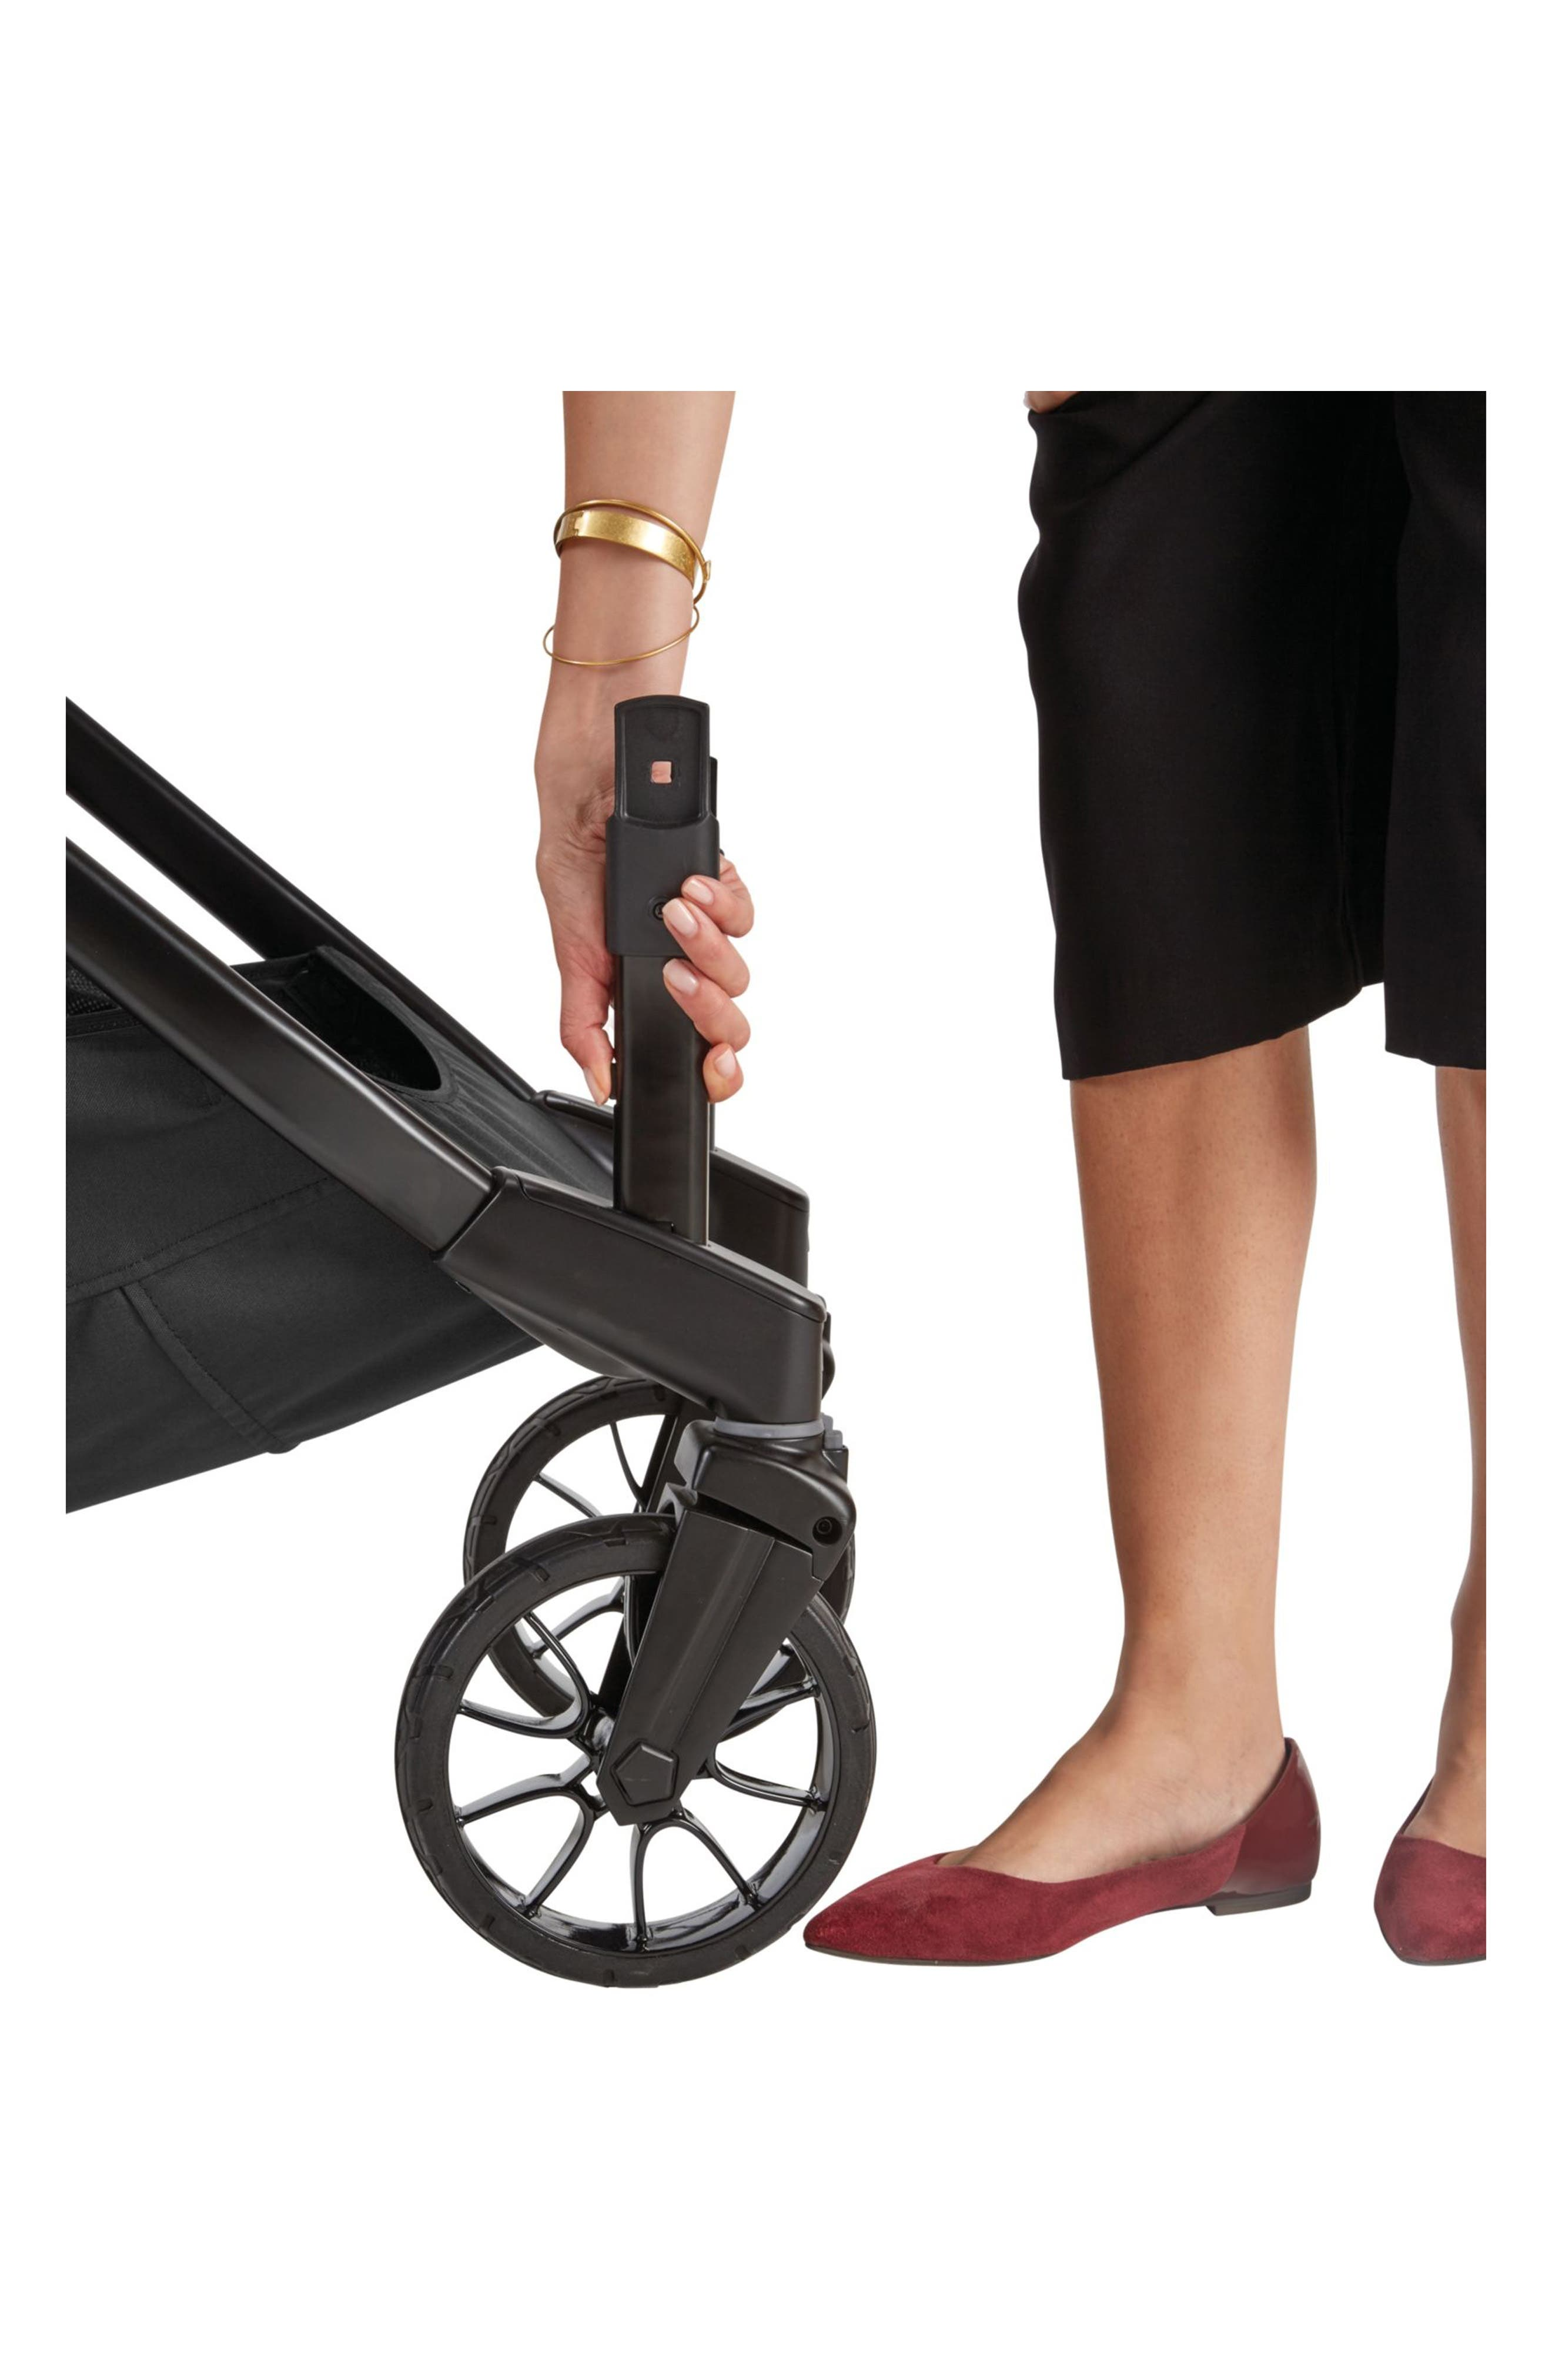 Main Image - Baby Jogger Second Seat Adapter Kit